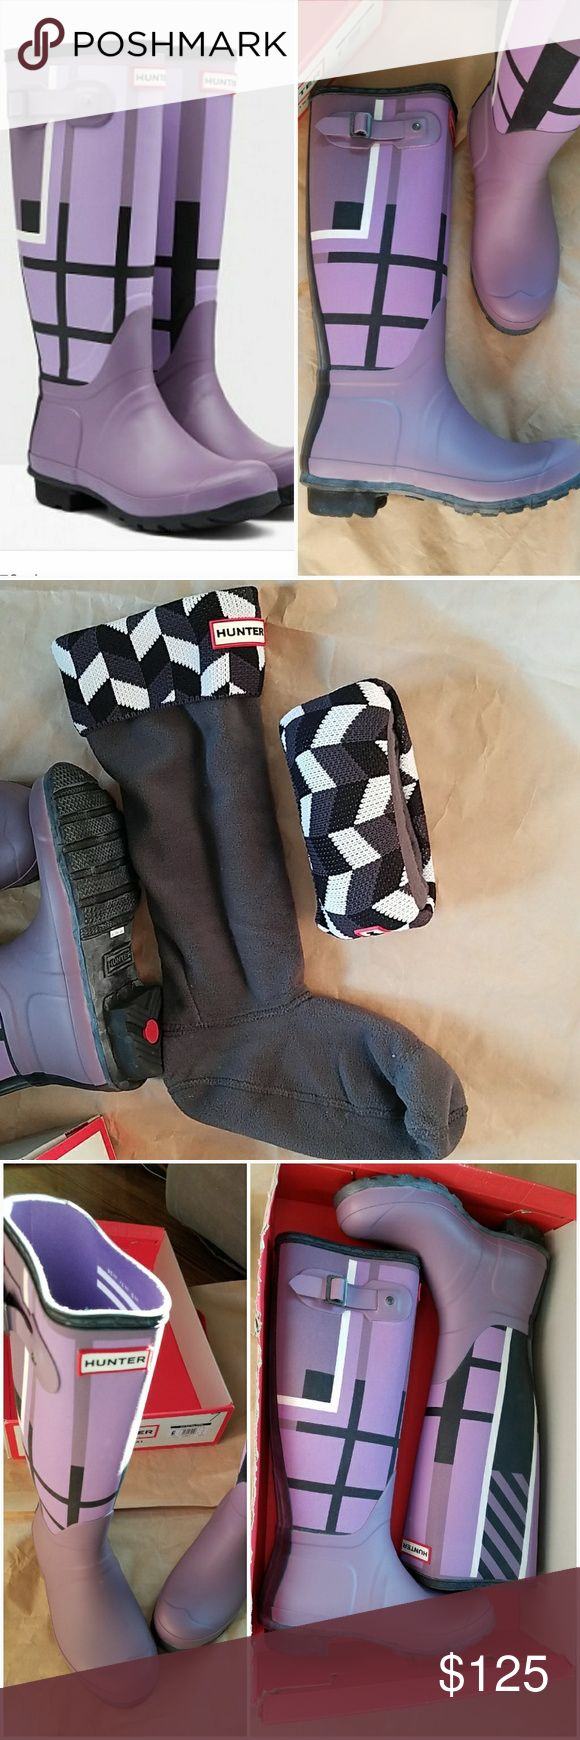 Hunter Tall Boots size 7 Hunter Boots size 7 Tartan Purple black & boot liners - both new in box Hunter Boots Shoes Winter & Rain Boots